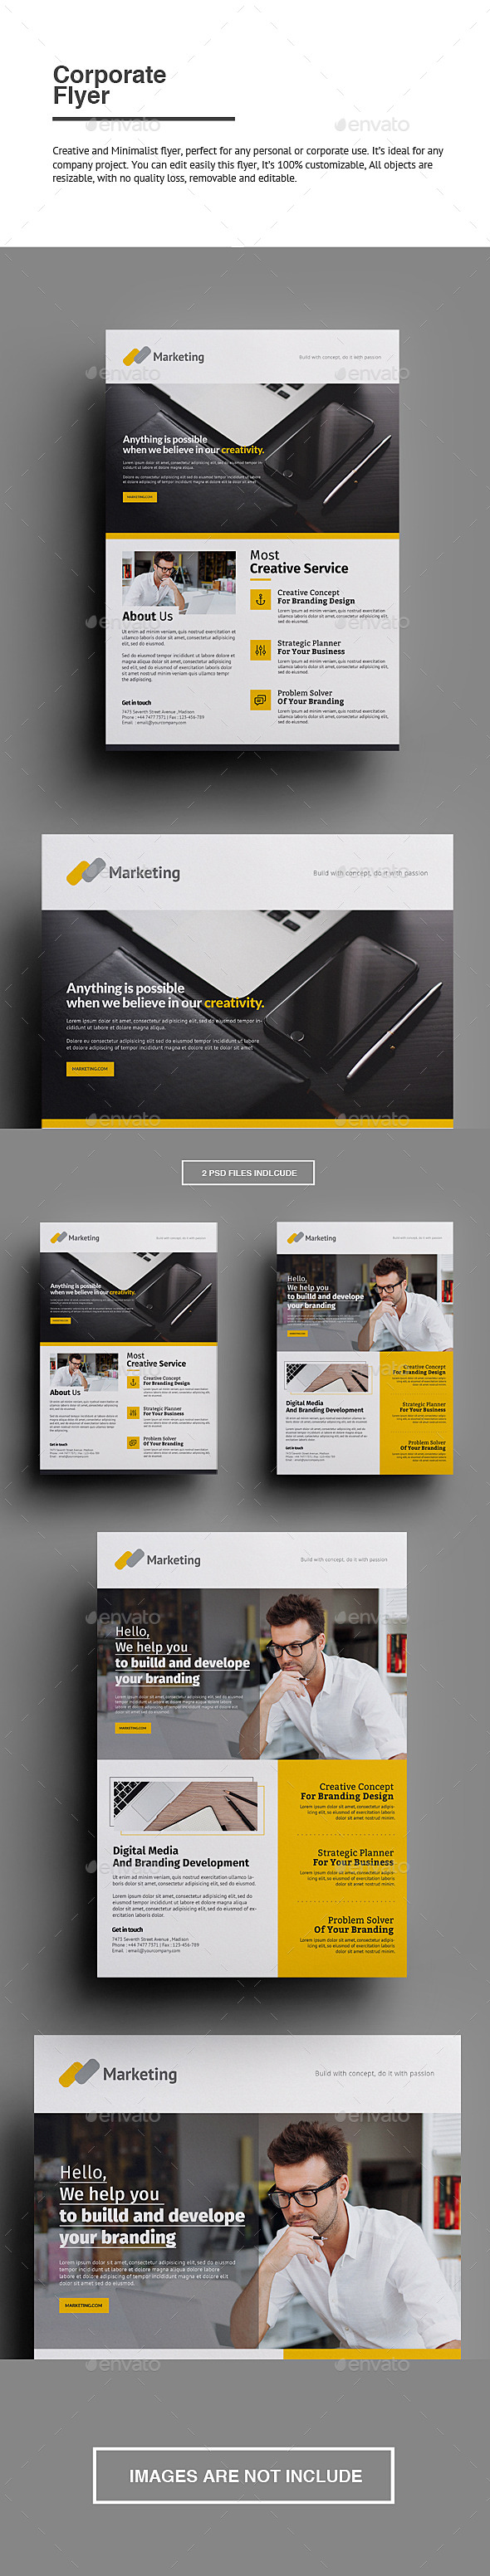 GraphicRiver Corporate Flyer 11595852